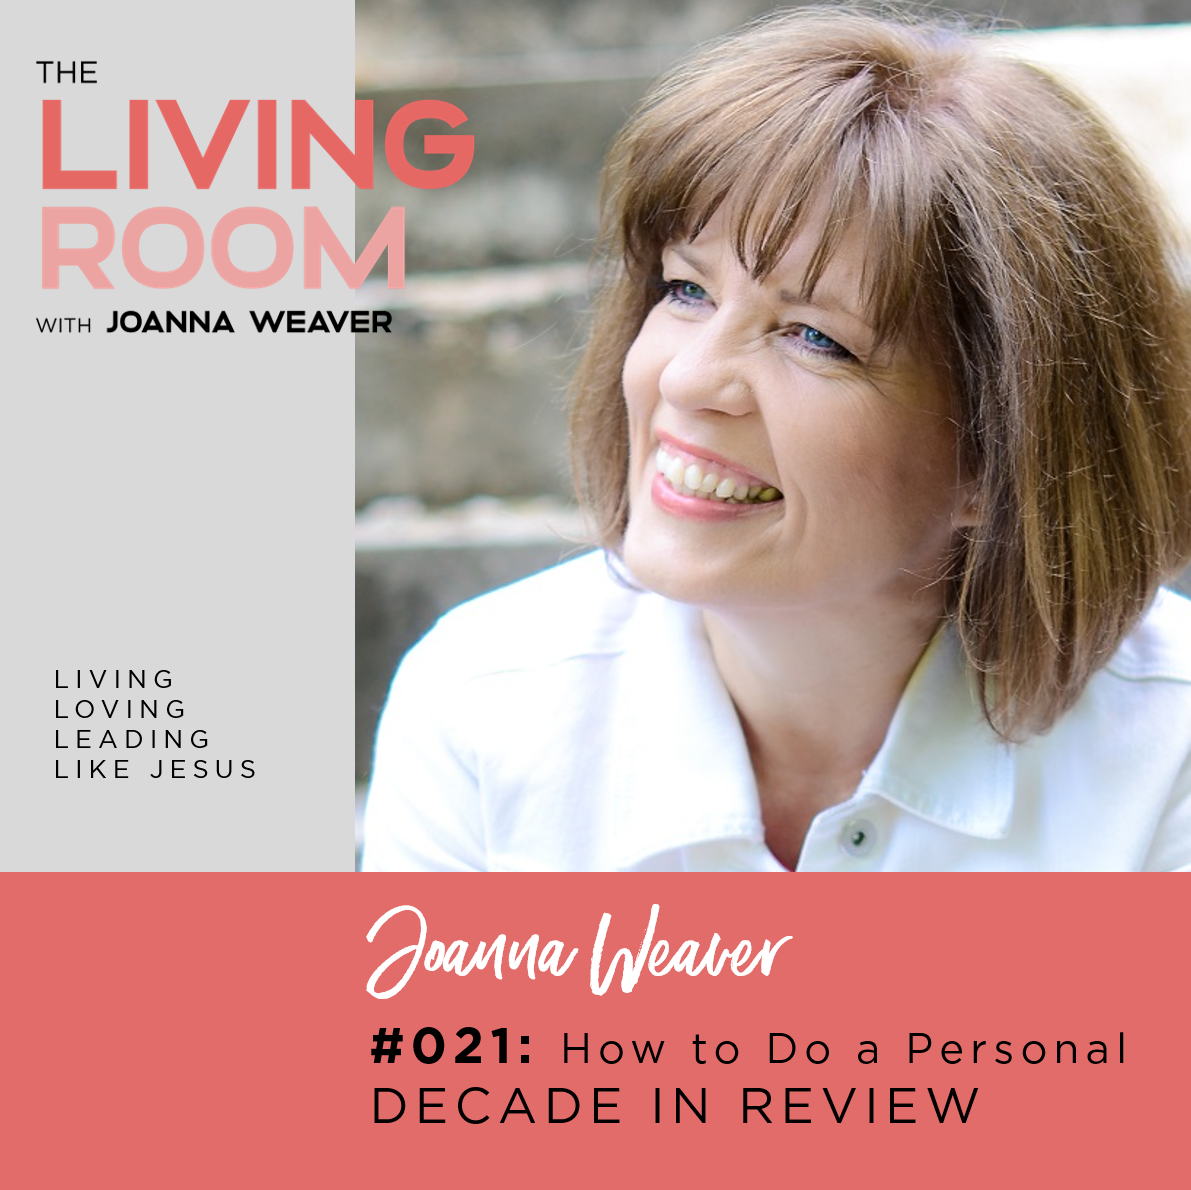 How to Do a Personal Decade in Review with Joanna Weaver TLR 021